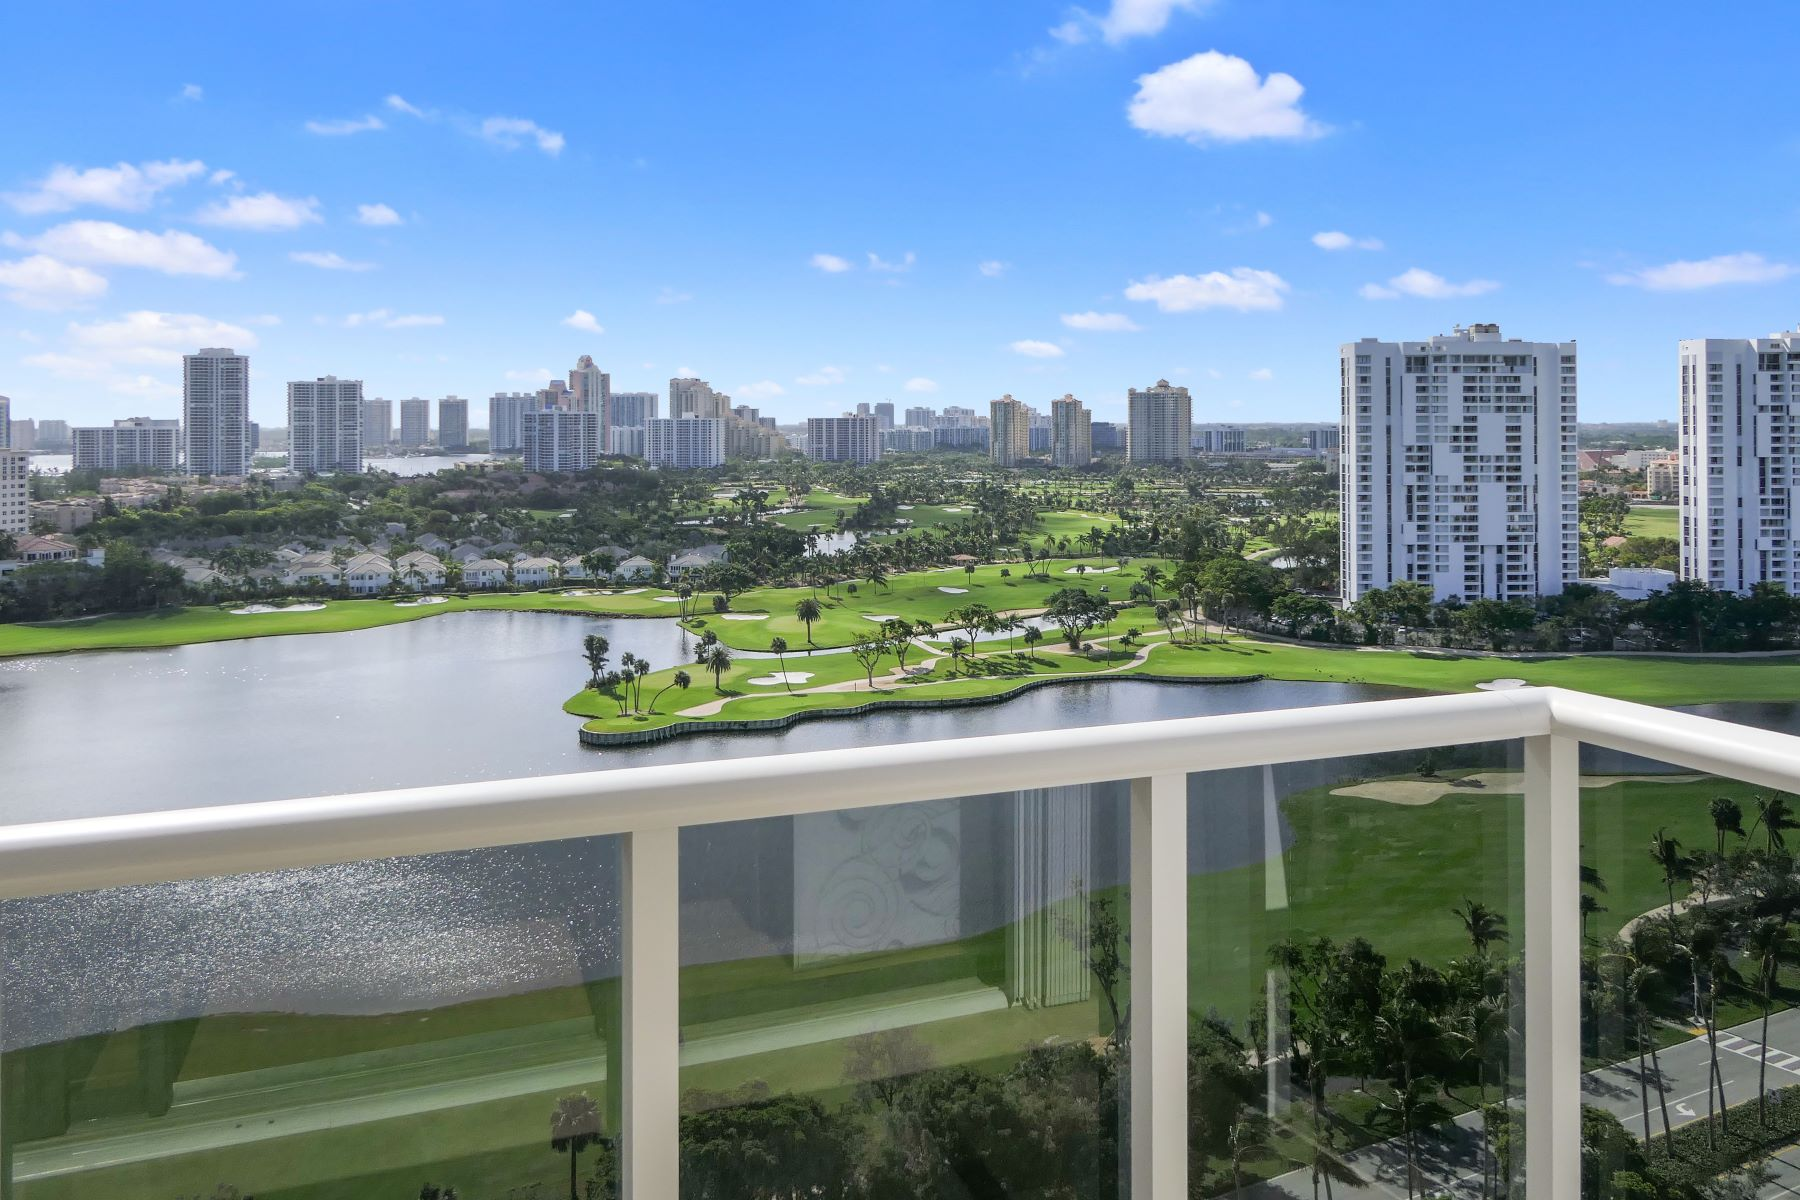 Condominium for Sale at 3675 Se Country Club Dr 3675 Se Country Club Dr 2109, Aventura, Florida, 33180 United States